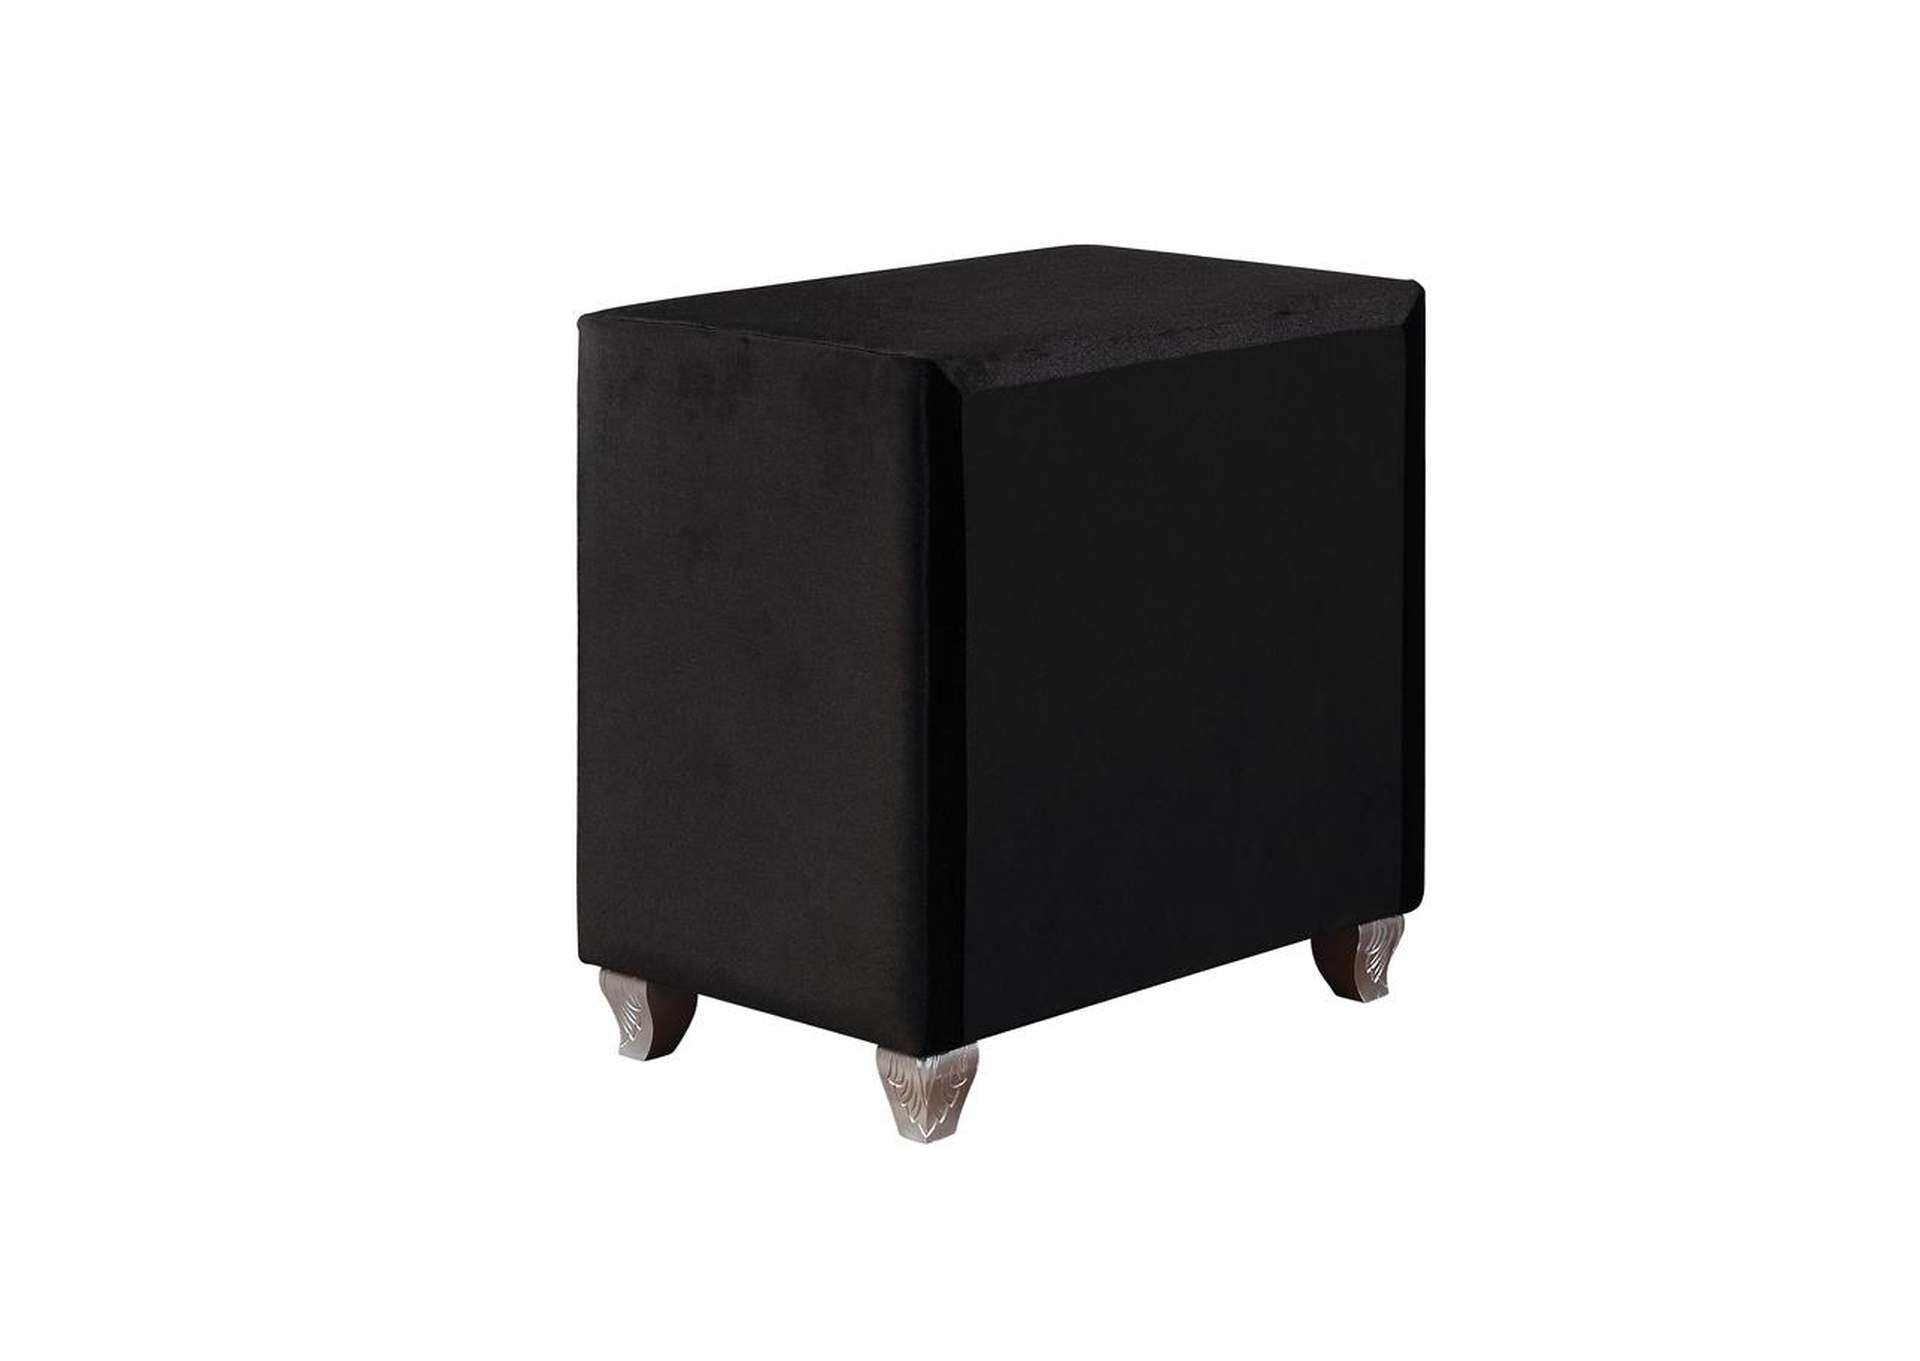 Deanna Metallic Black Nightstand,Coaster Furniture